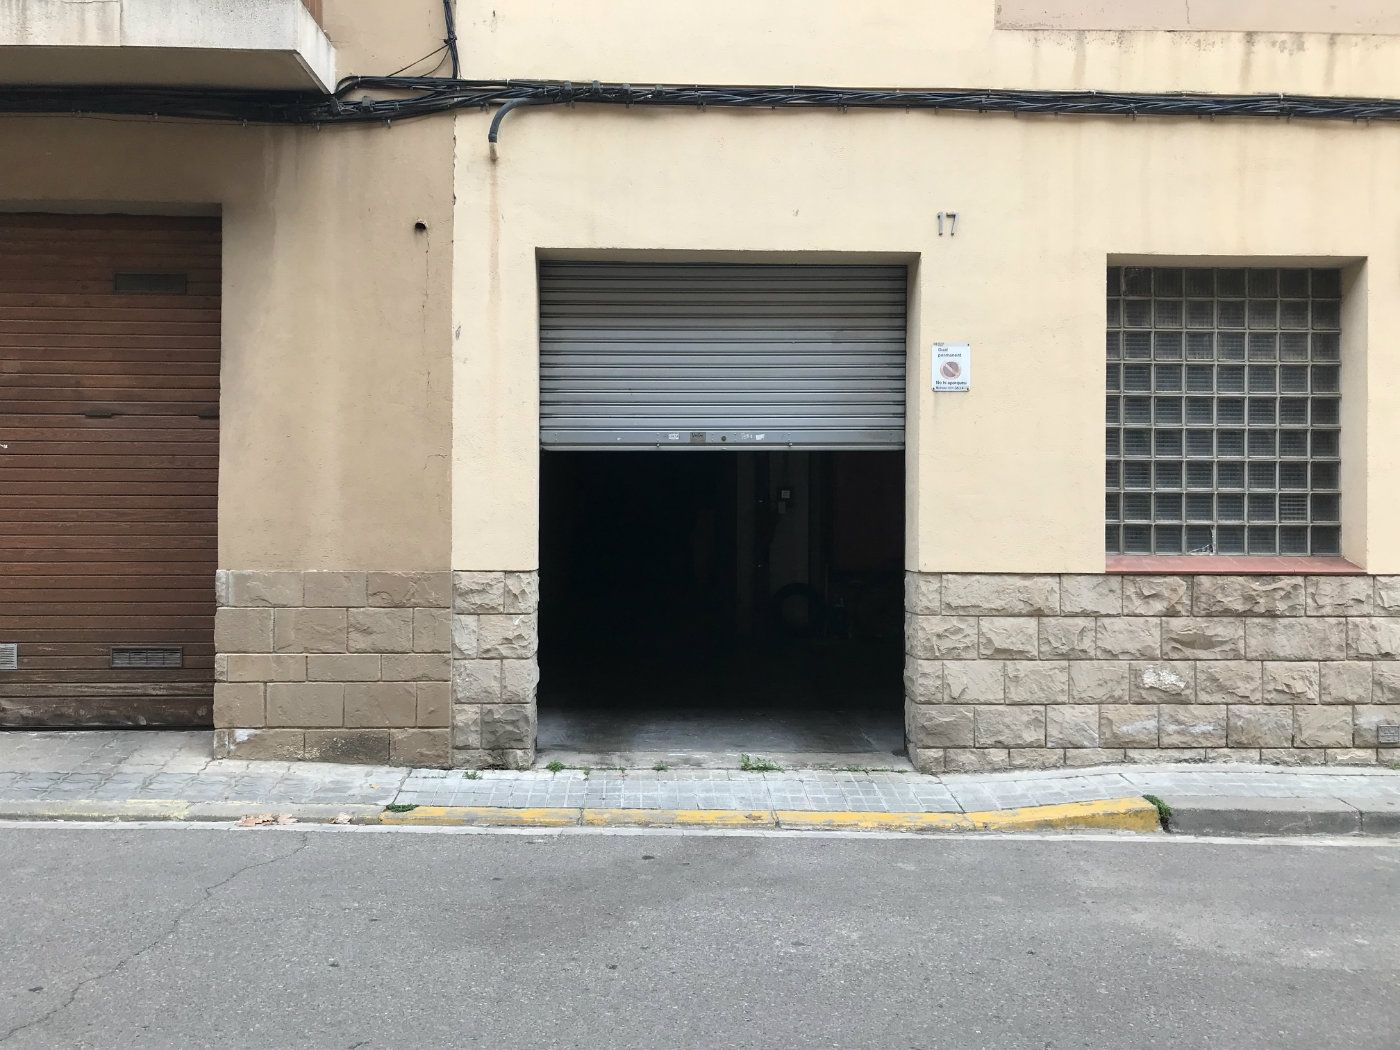 Rent Car parking in Carrer s pere, 21. Plaça d´aparcament en lloguer